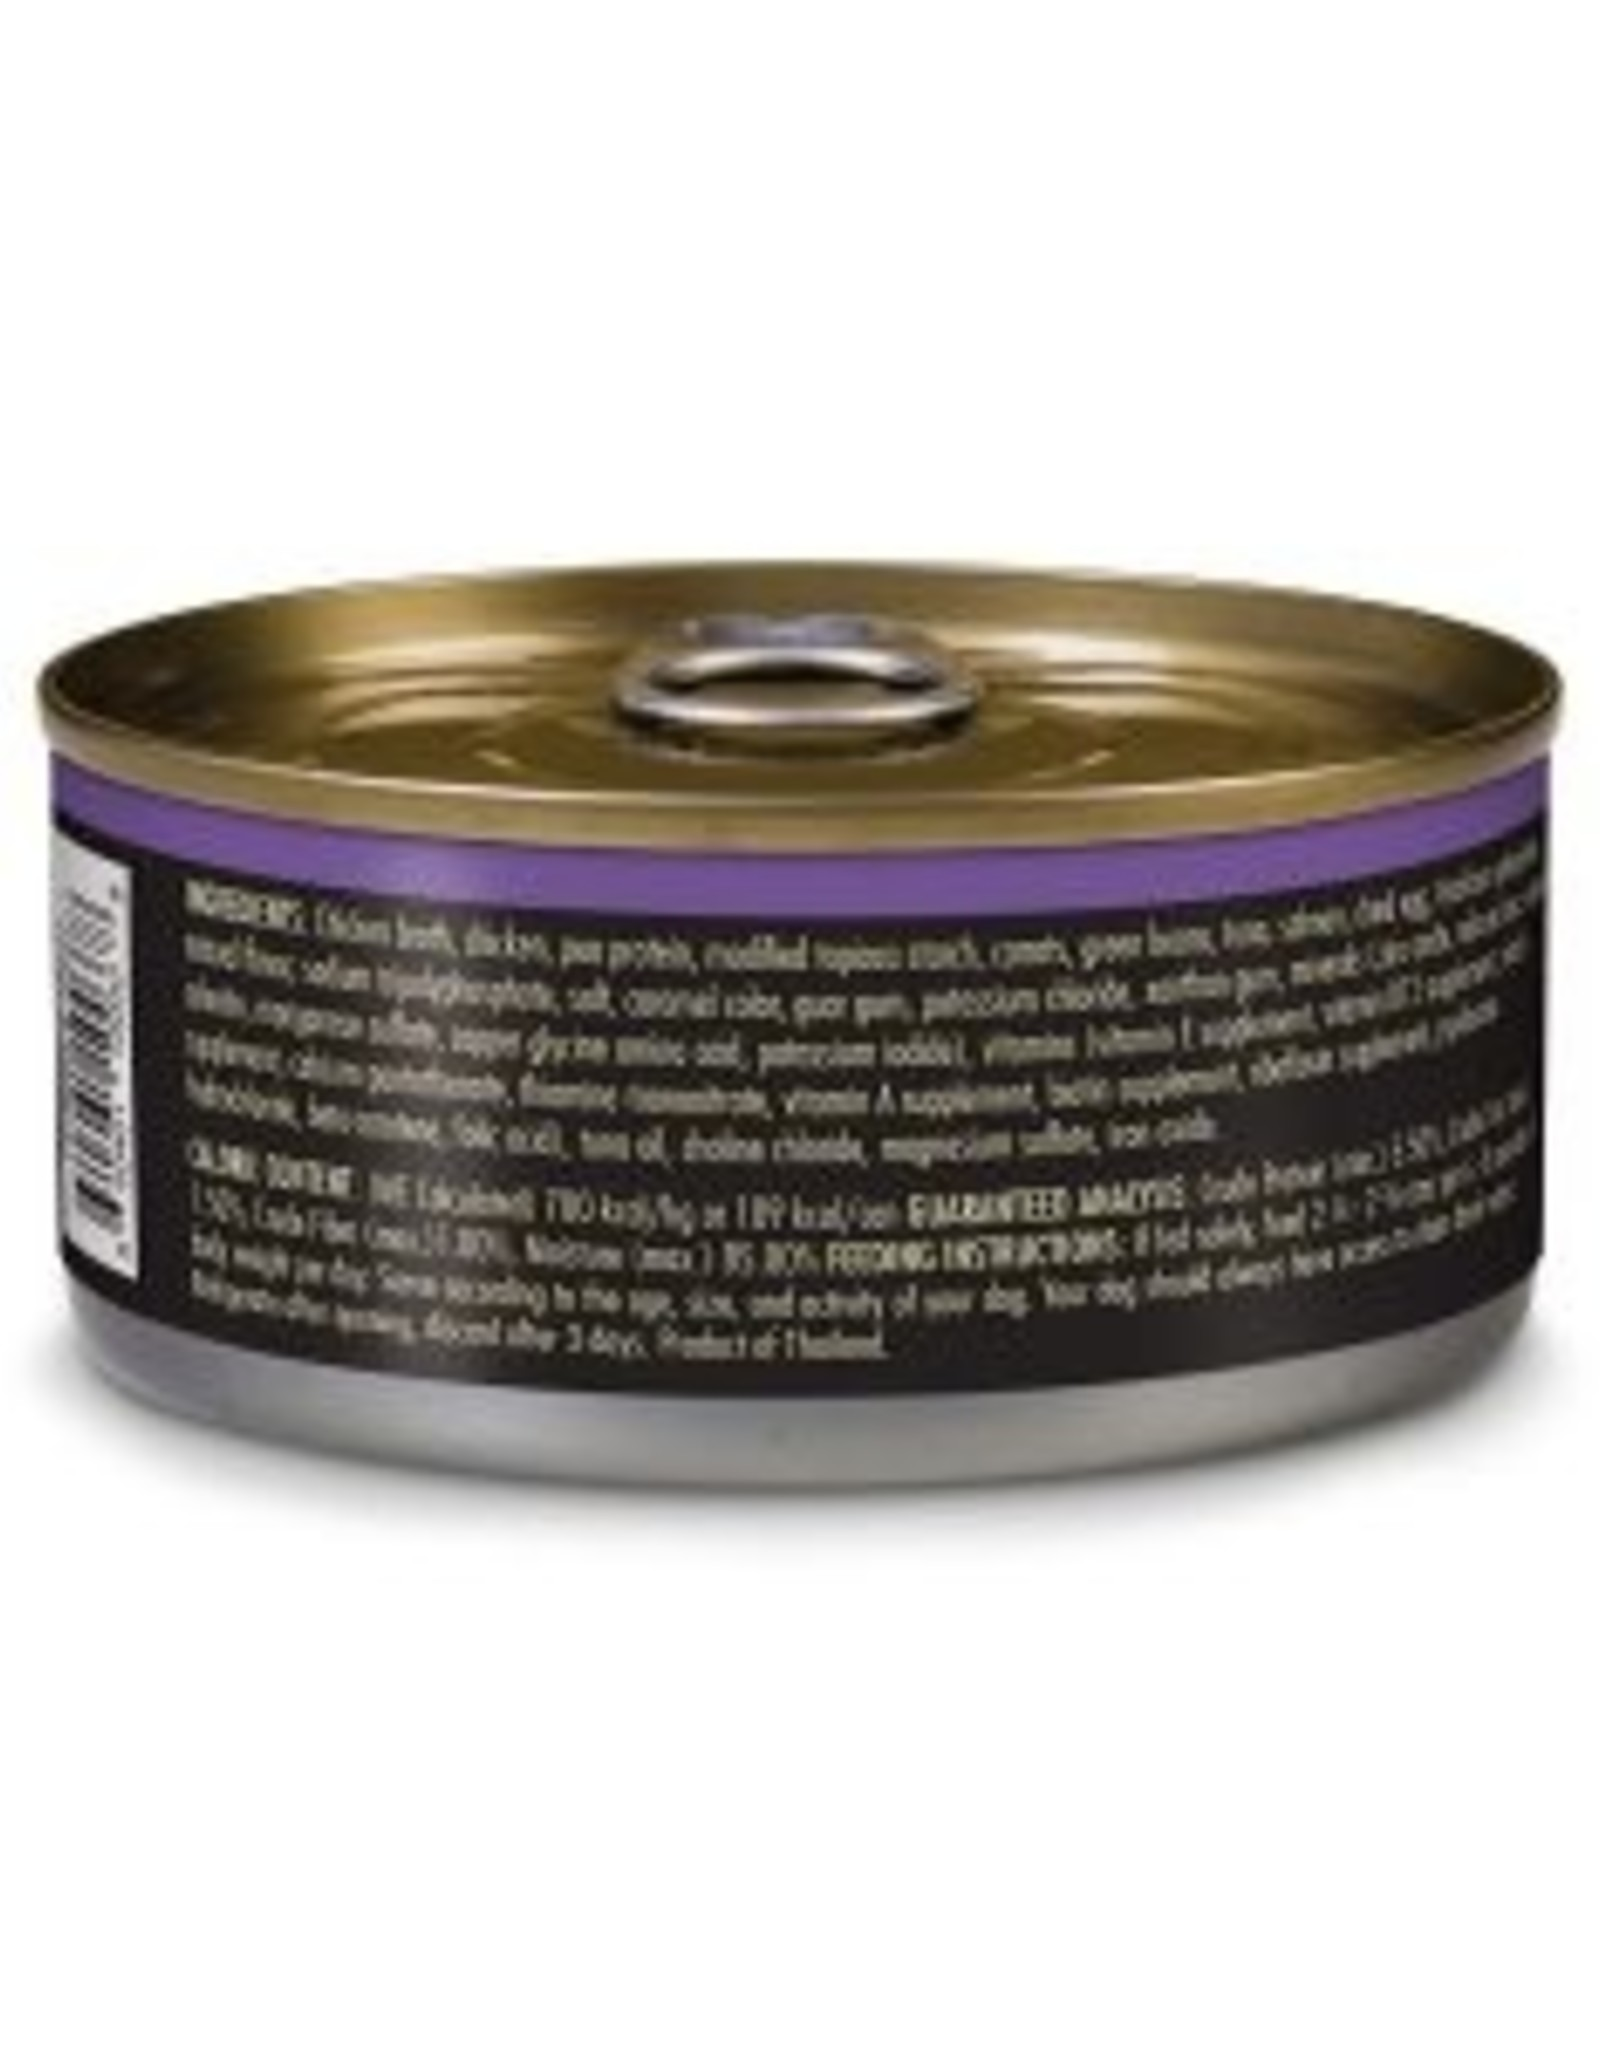 CANIDAE PET FOODS CANIDAE CAN DOG SMALL BREED CHICKEN, TUNA & SALMON IN GRAVY 5.5OZ